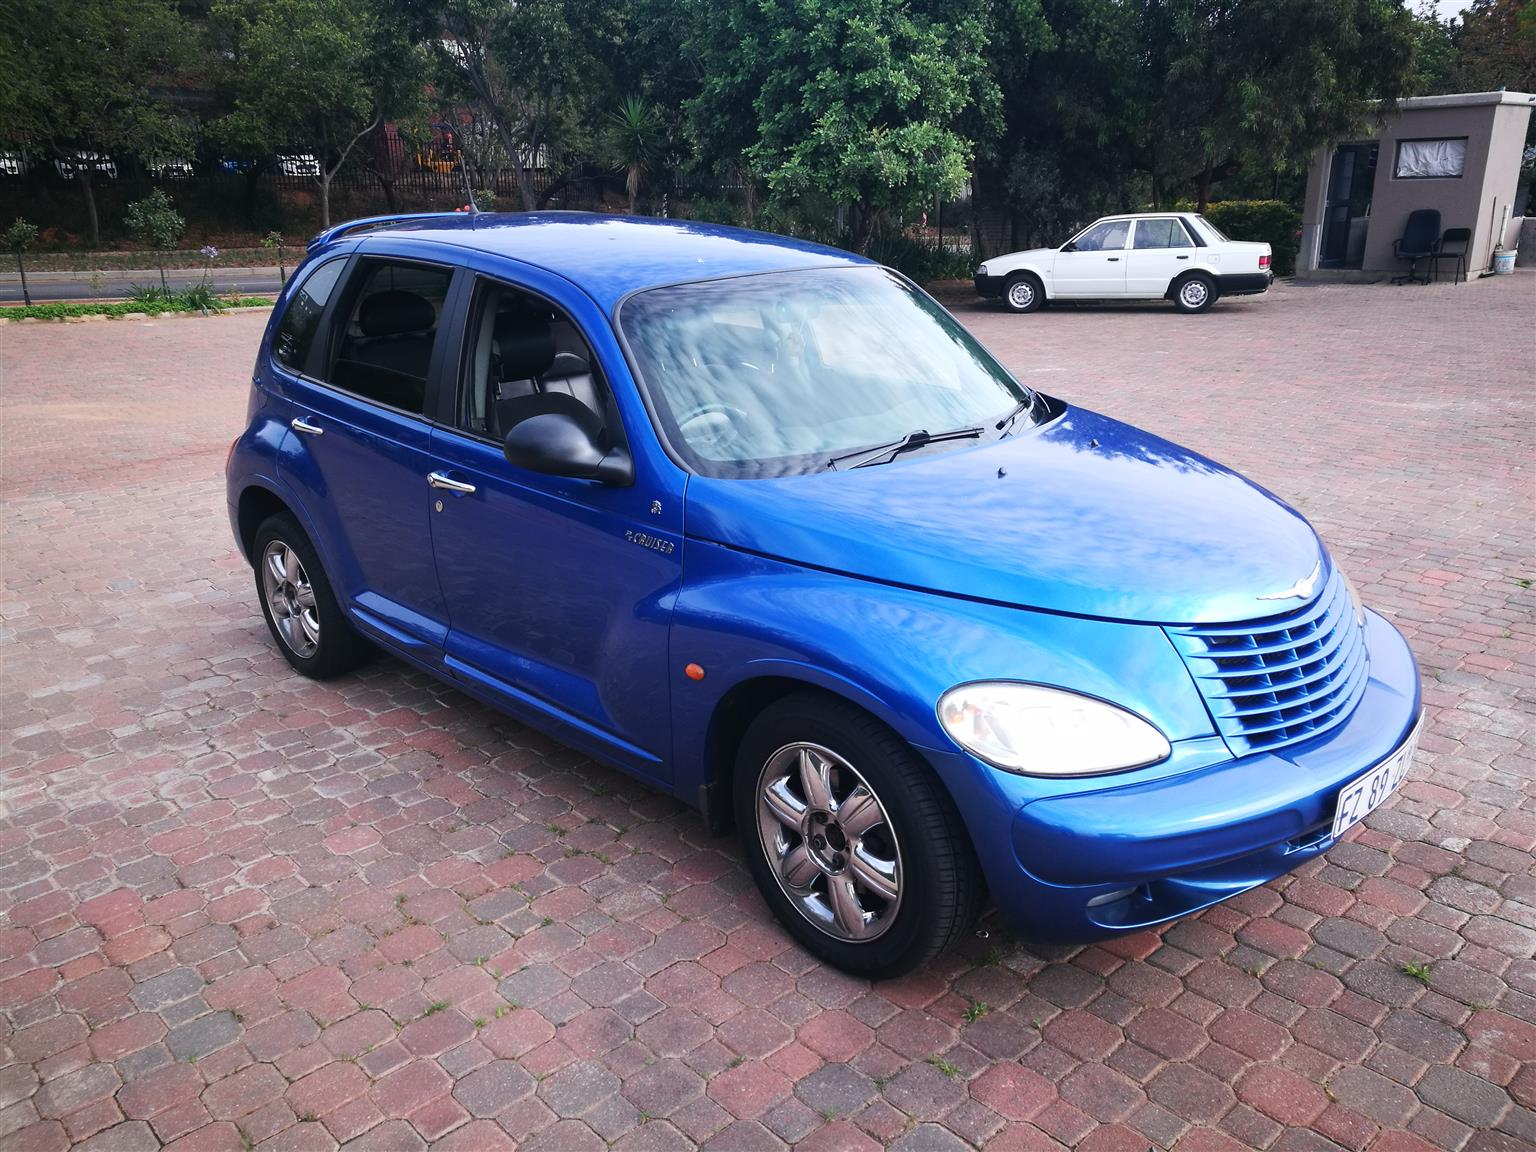 2005 Chrysler PT Cruiser 2.4 Limited Edition